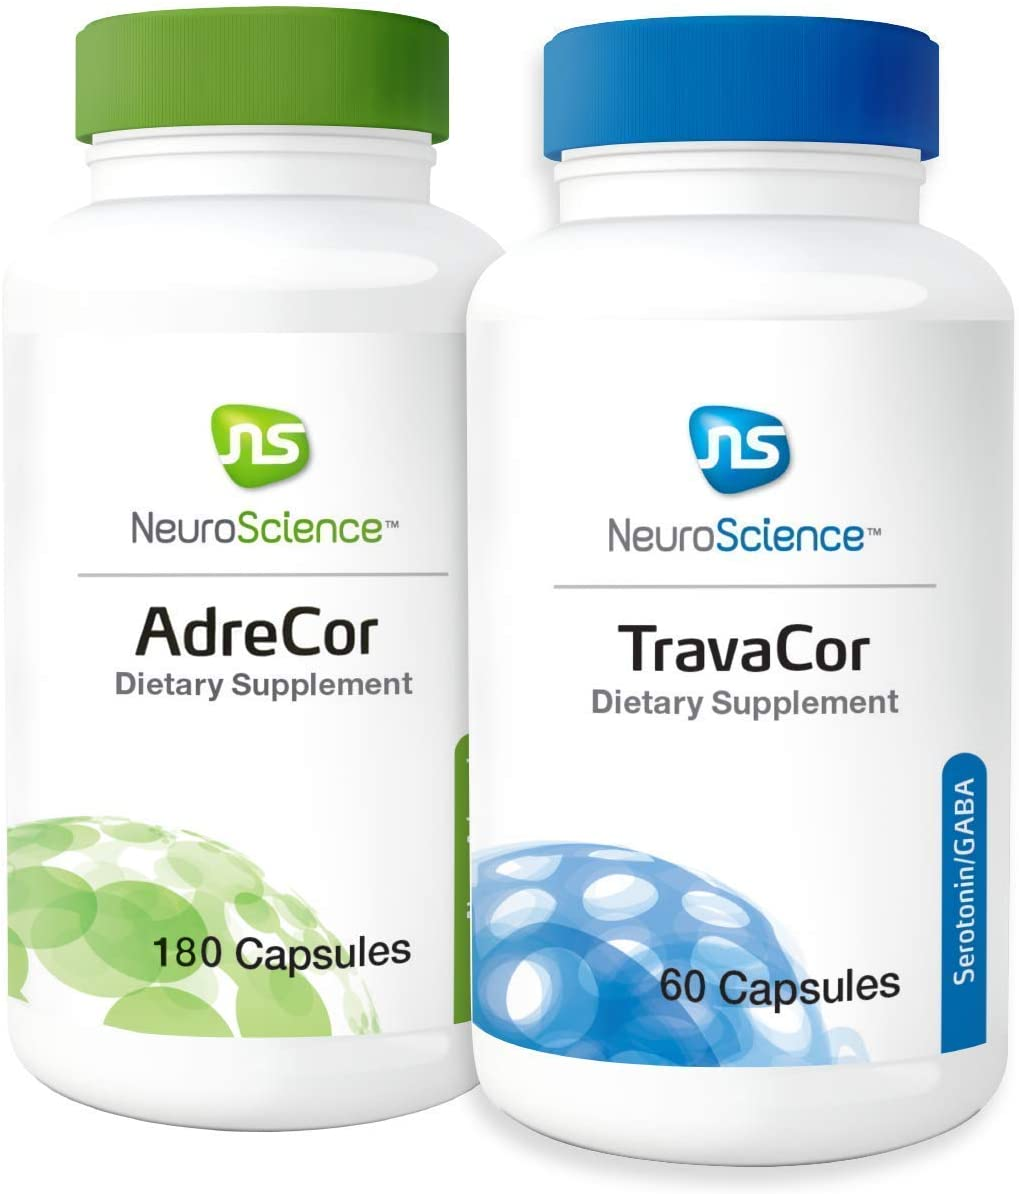 NeuroScience Mood + Adrenal Support Set - AdreCor + TravaCor (2 Products, 180 Capsules, 60 Capsules)